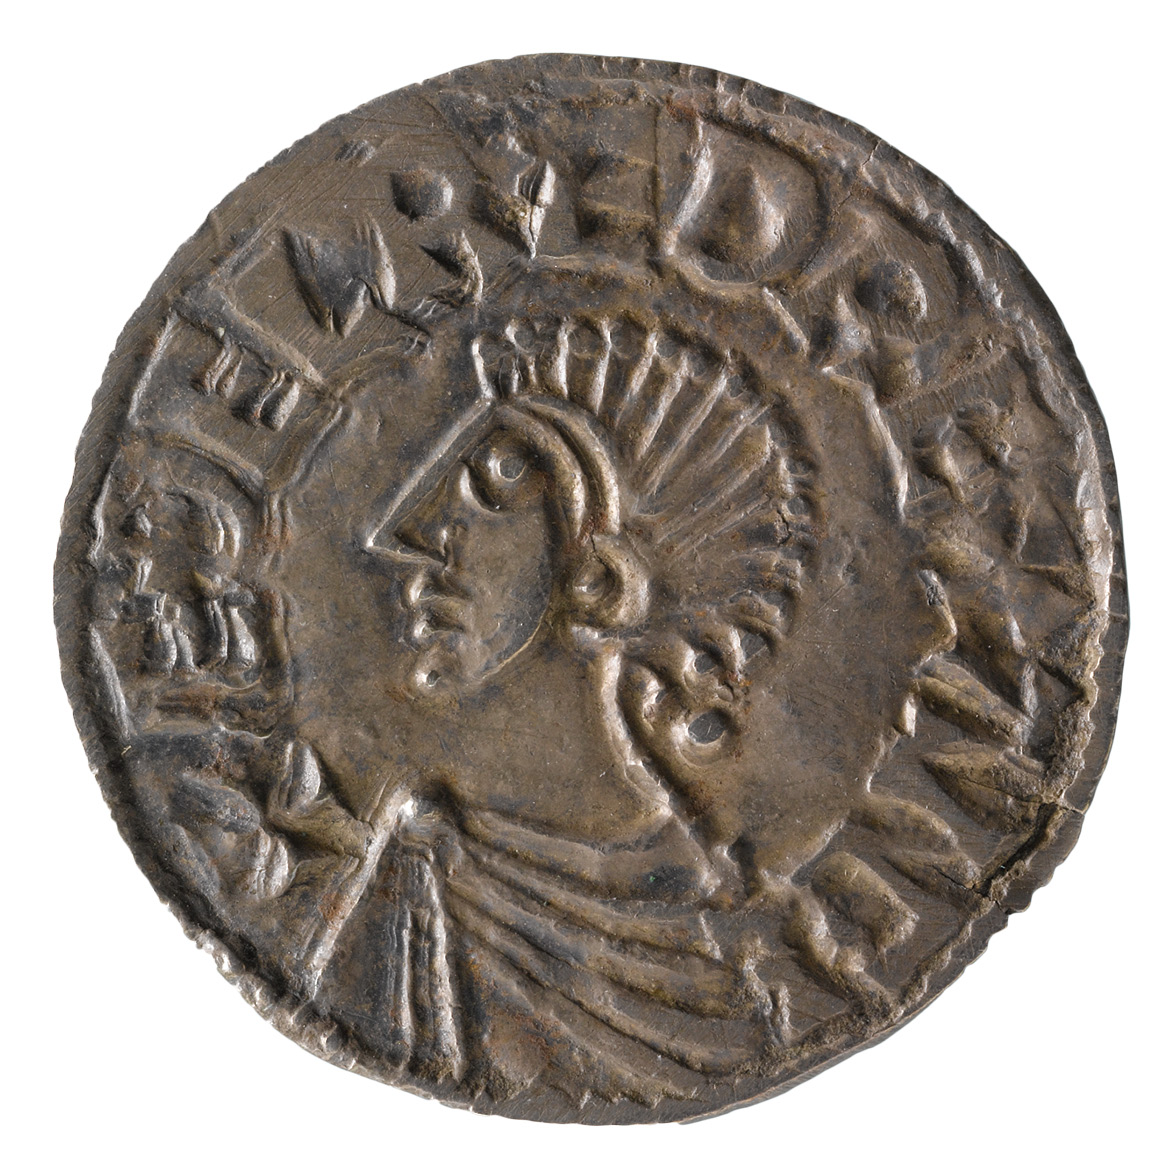 BELOW A high point in Exeter's story came in the late Saxon period, when it was fortified as a burh and became an important mint. This is a Long Cross coin of Æthelred II (r. 978-1013 and 1014-1016), minted in the town by the moneyer Dunstan.